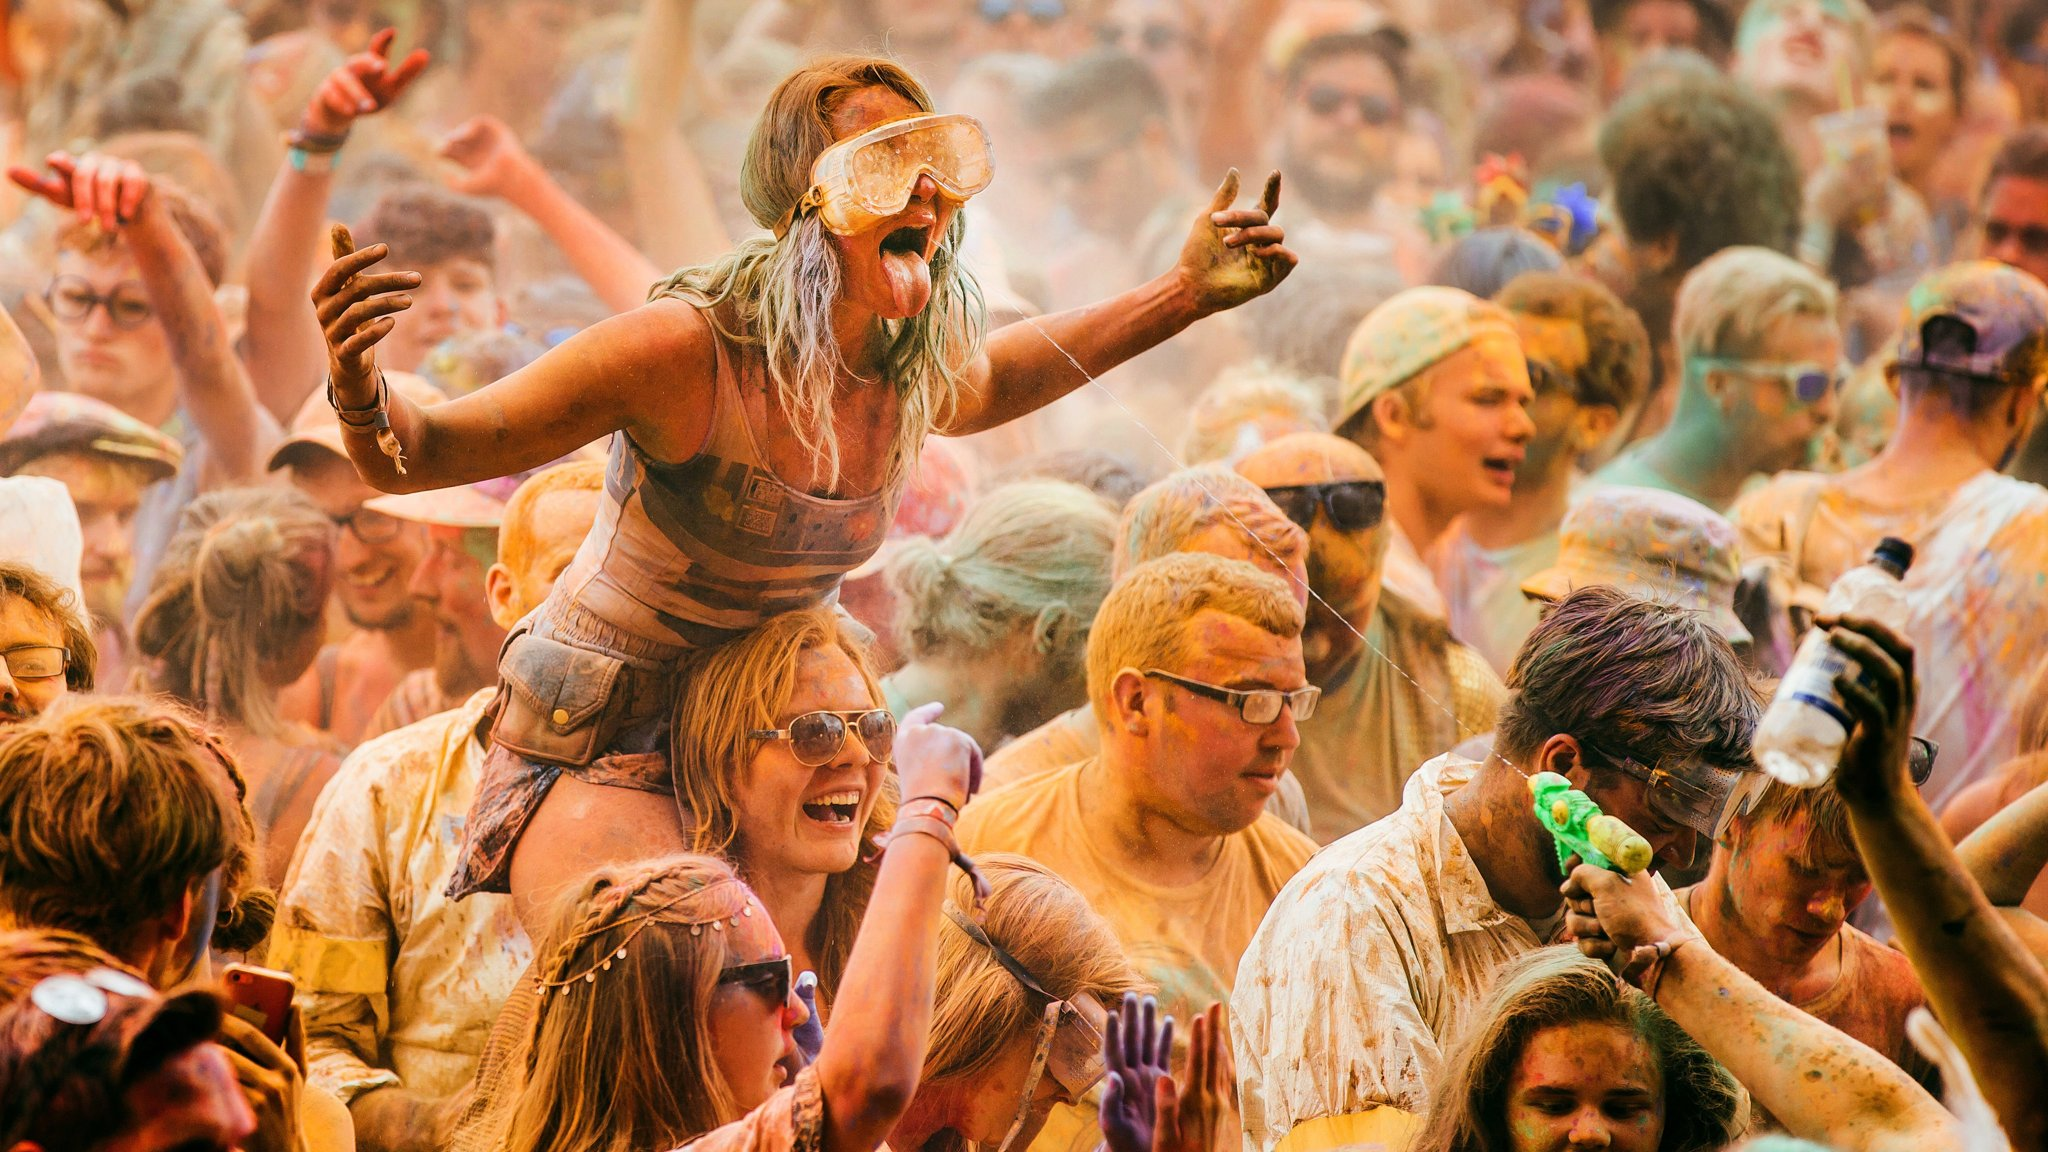 Has the UK's festival scene reached saturation point? | Financial Times